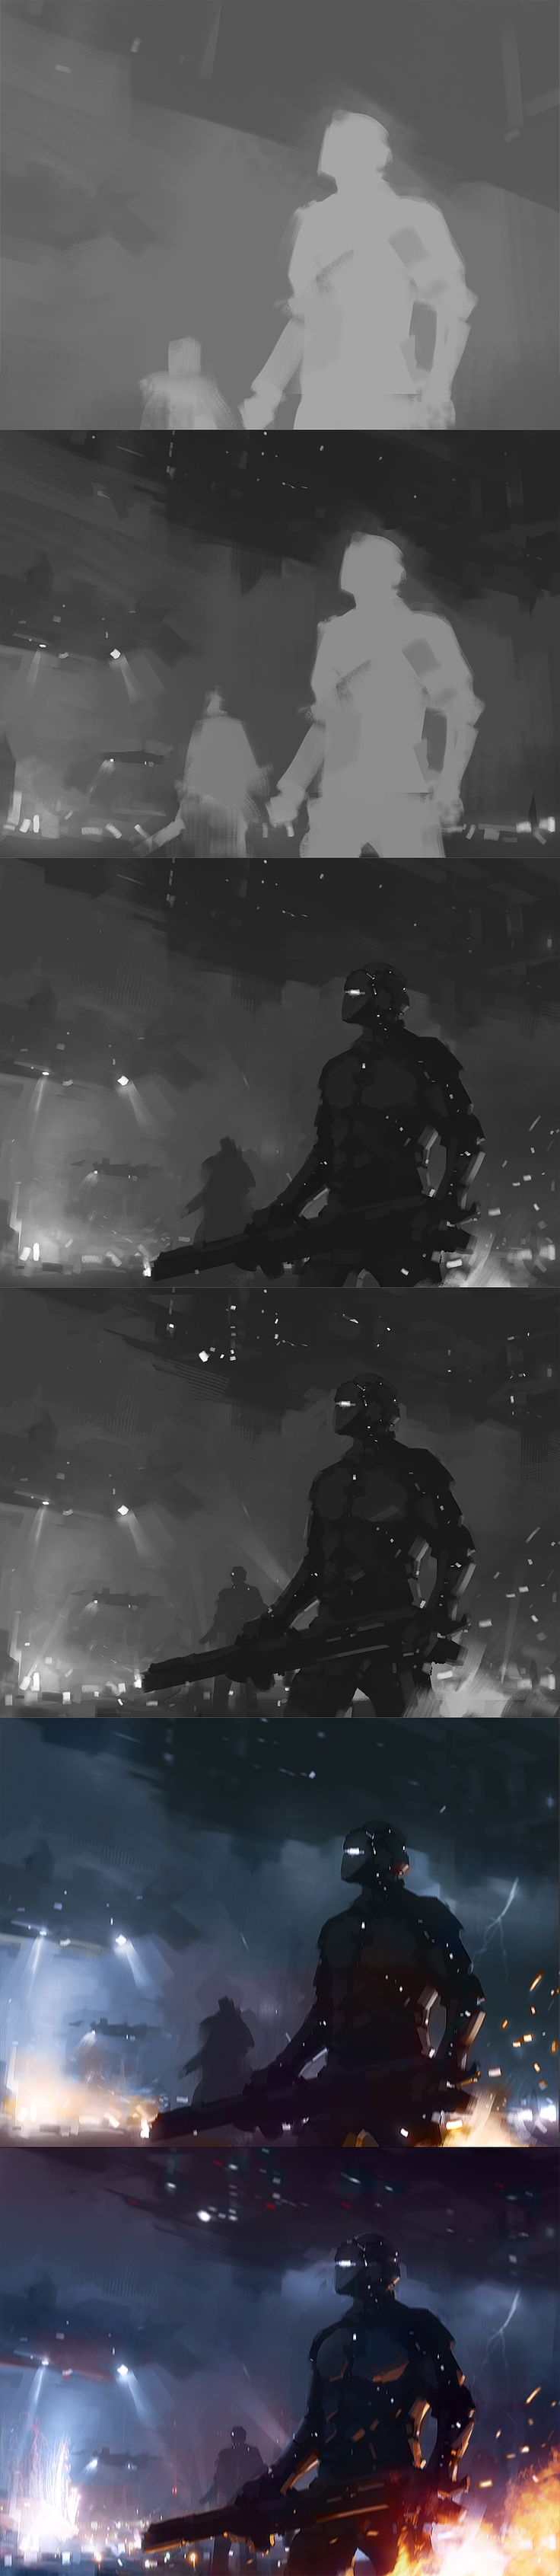 Some process by jamajurabaev.deviantart.com on @deviantART